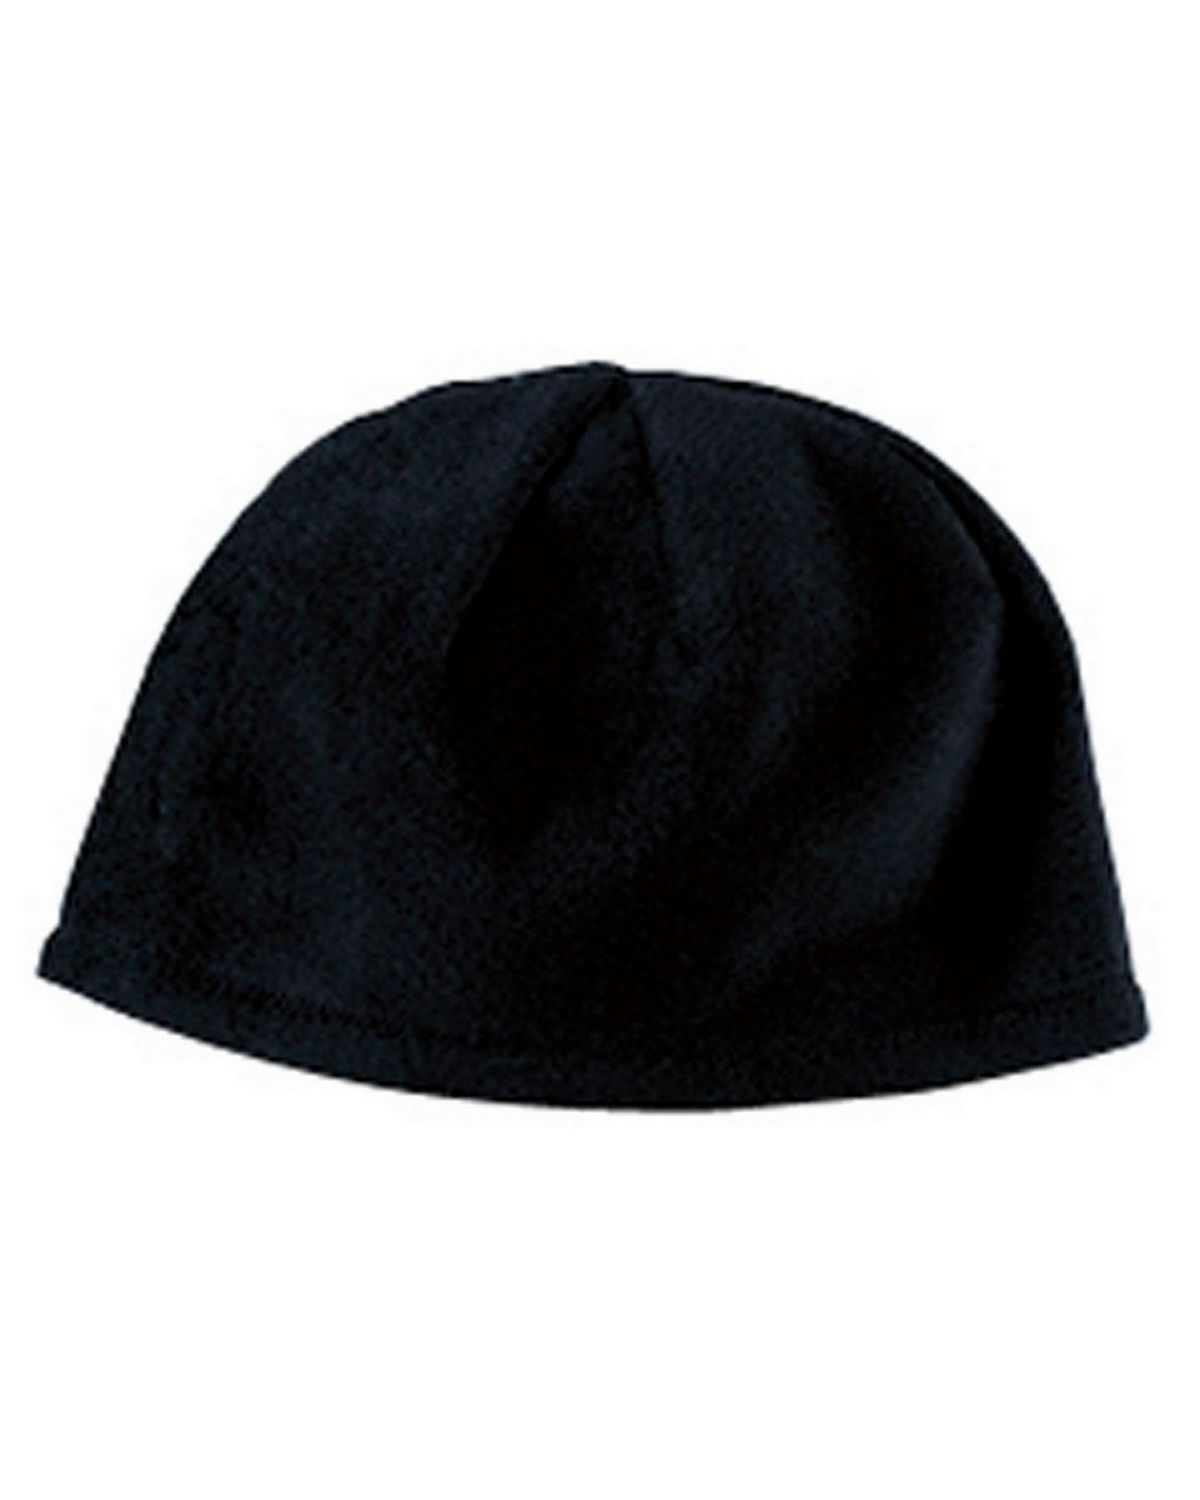 Big Accessories BX013 Knit Fleece Beanie - Royal - One Size BX013